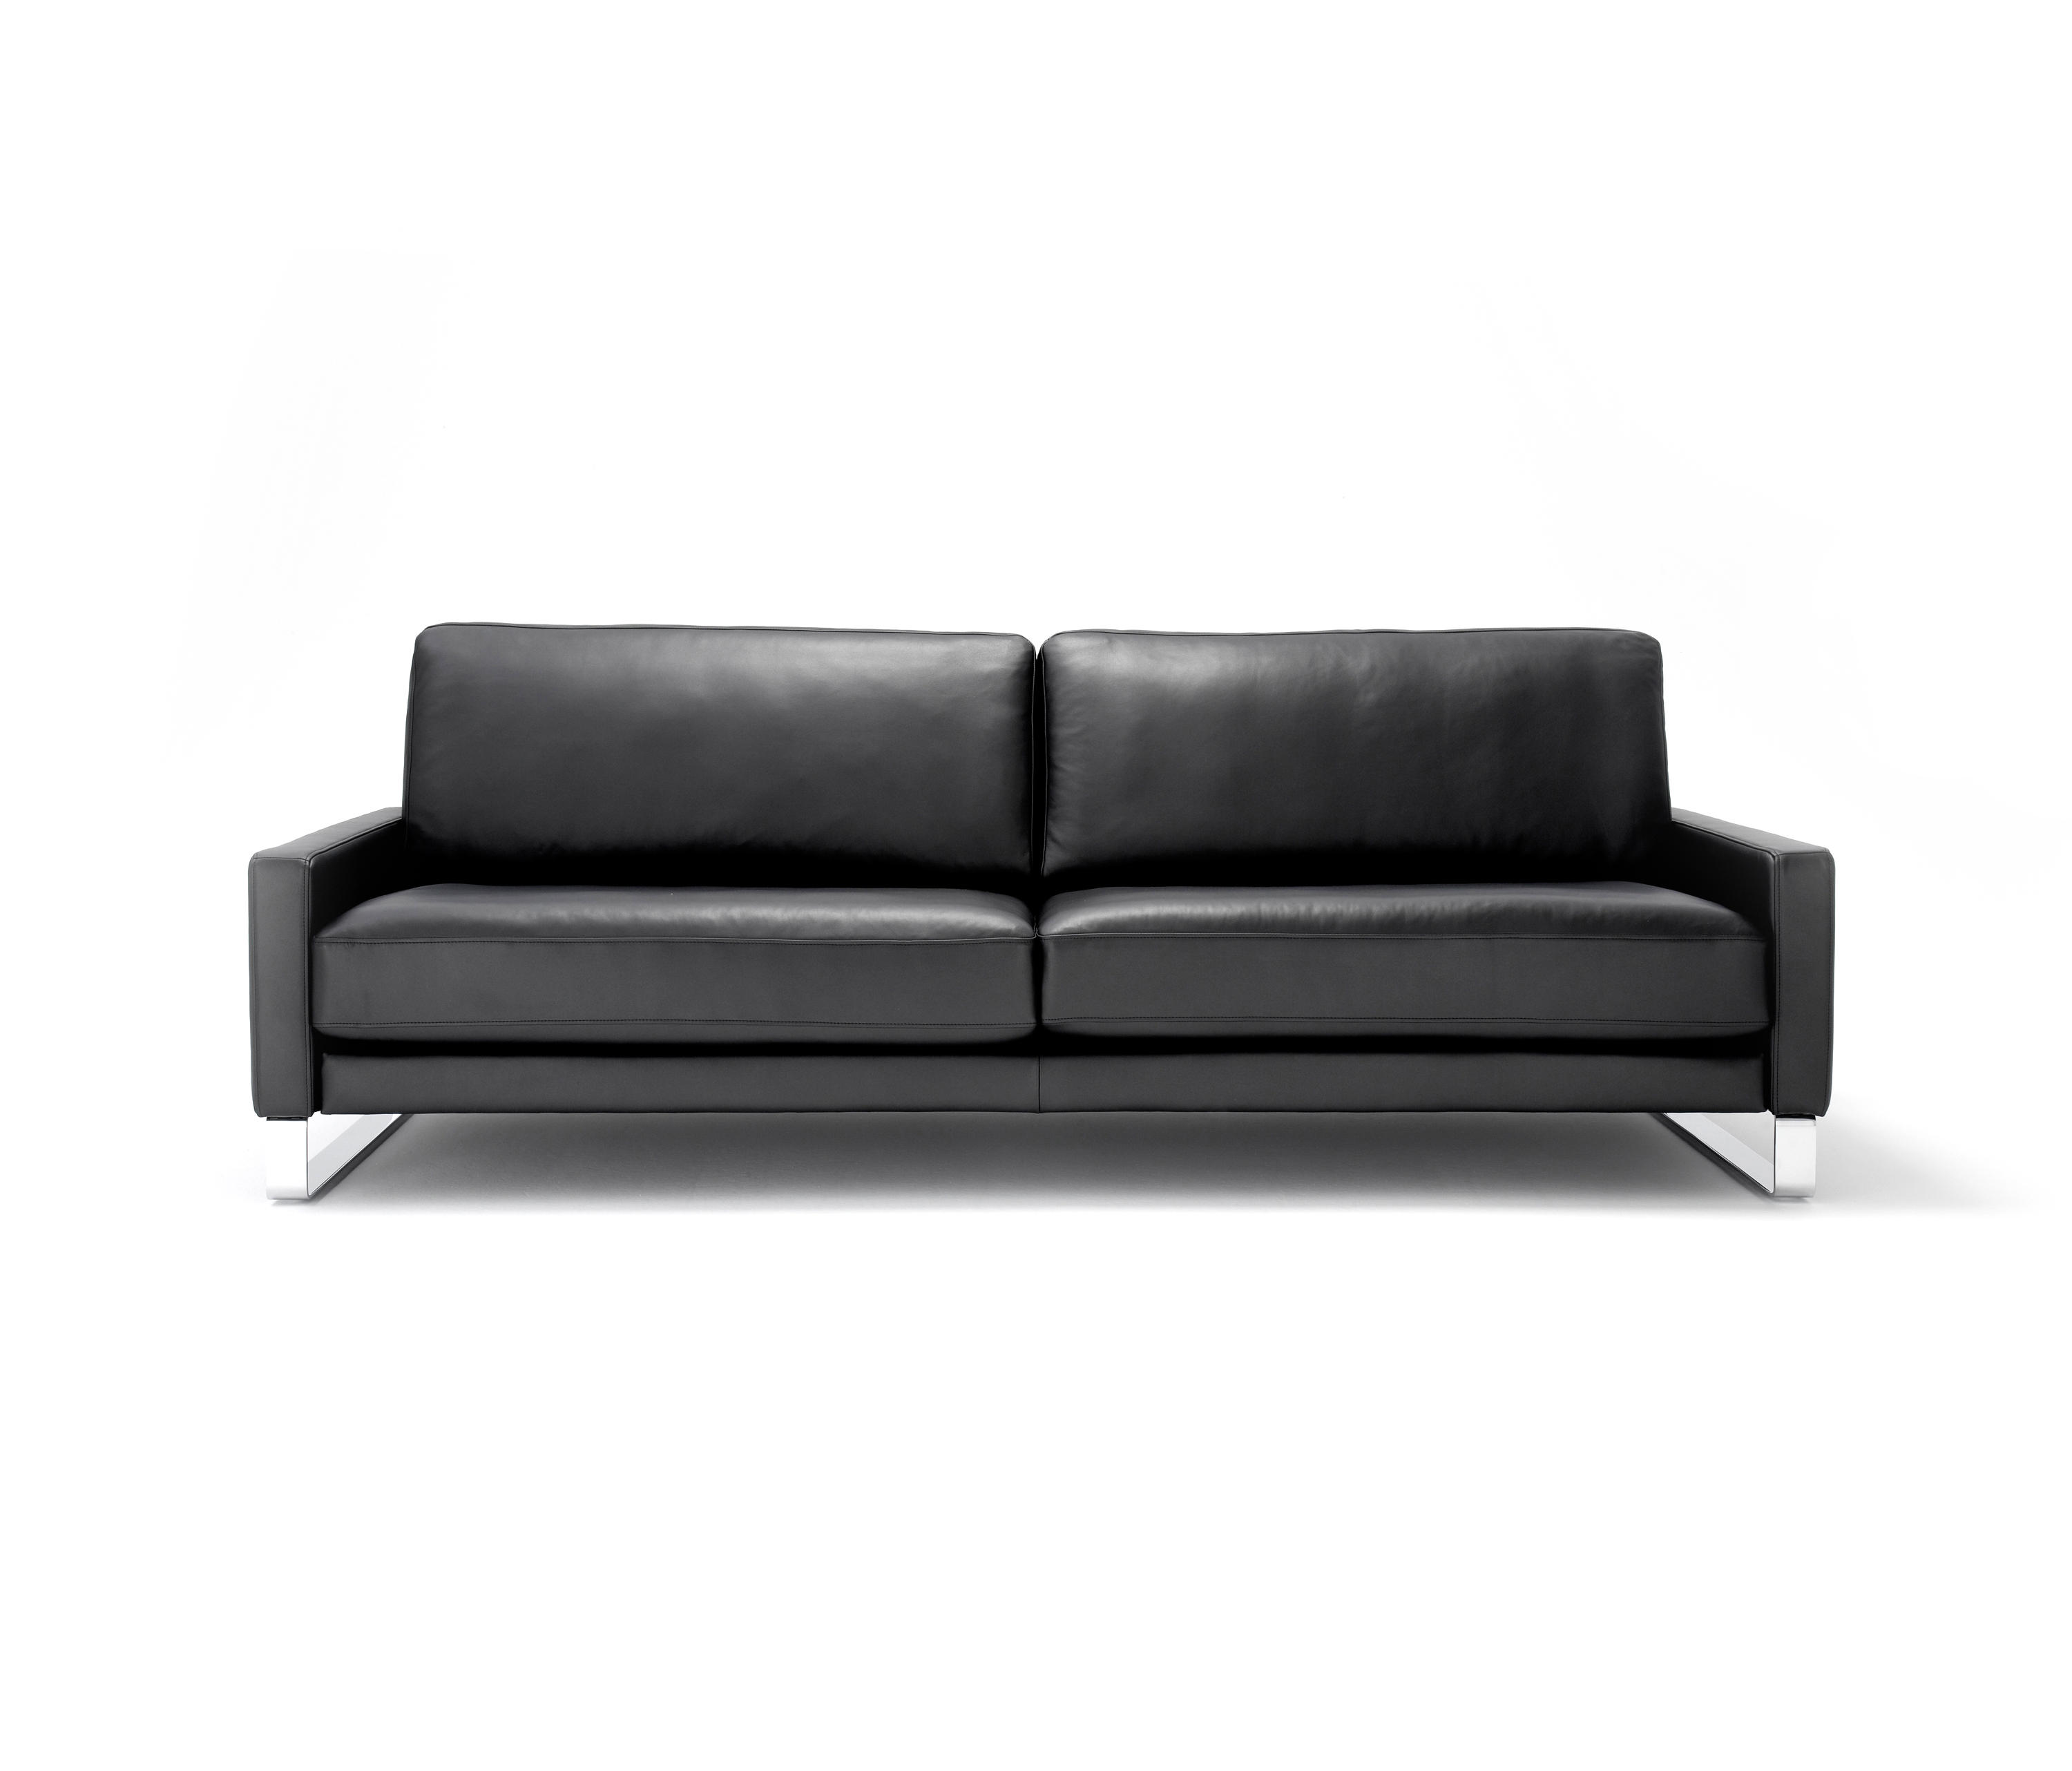 Rolf Benz Ego Lounge Sofas From Rolf Benz Architonic